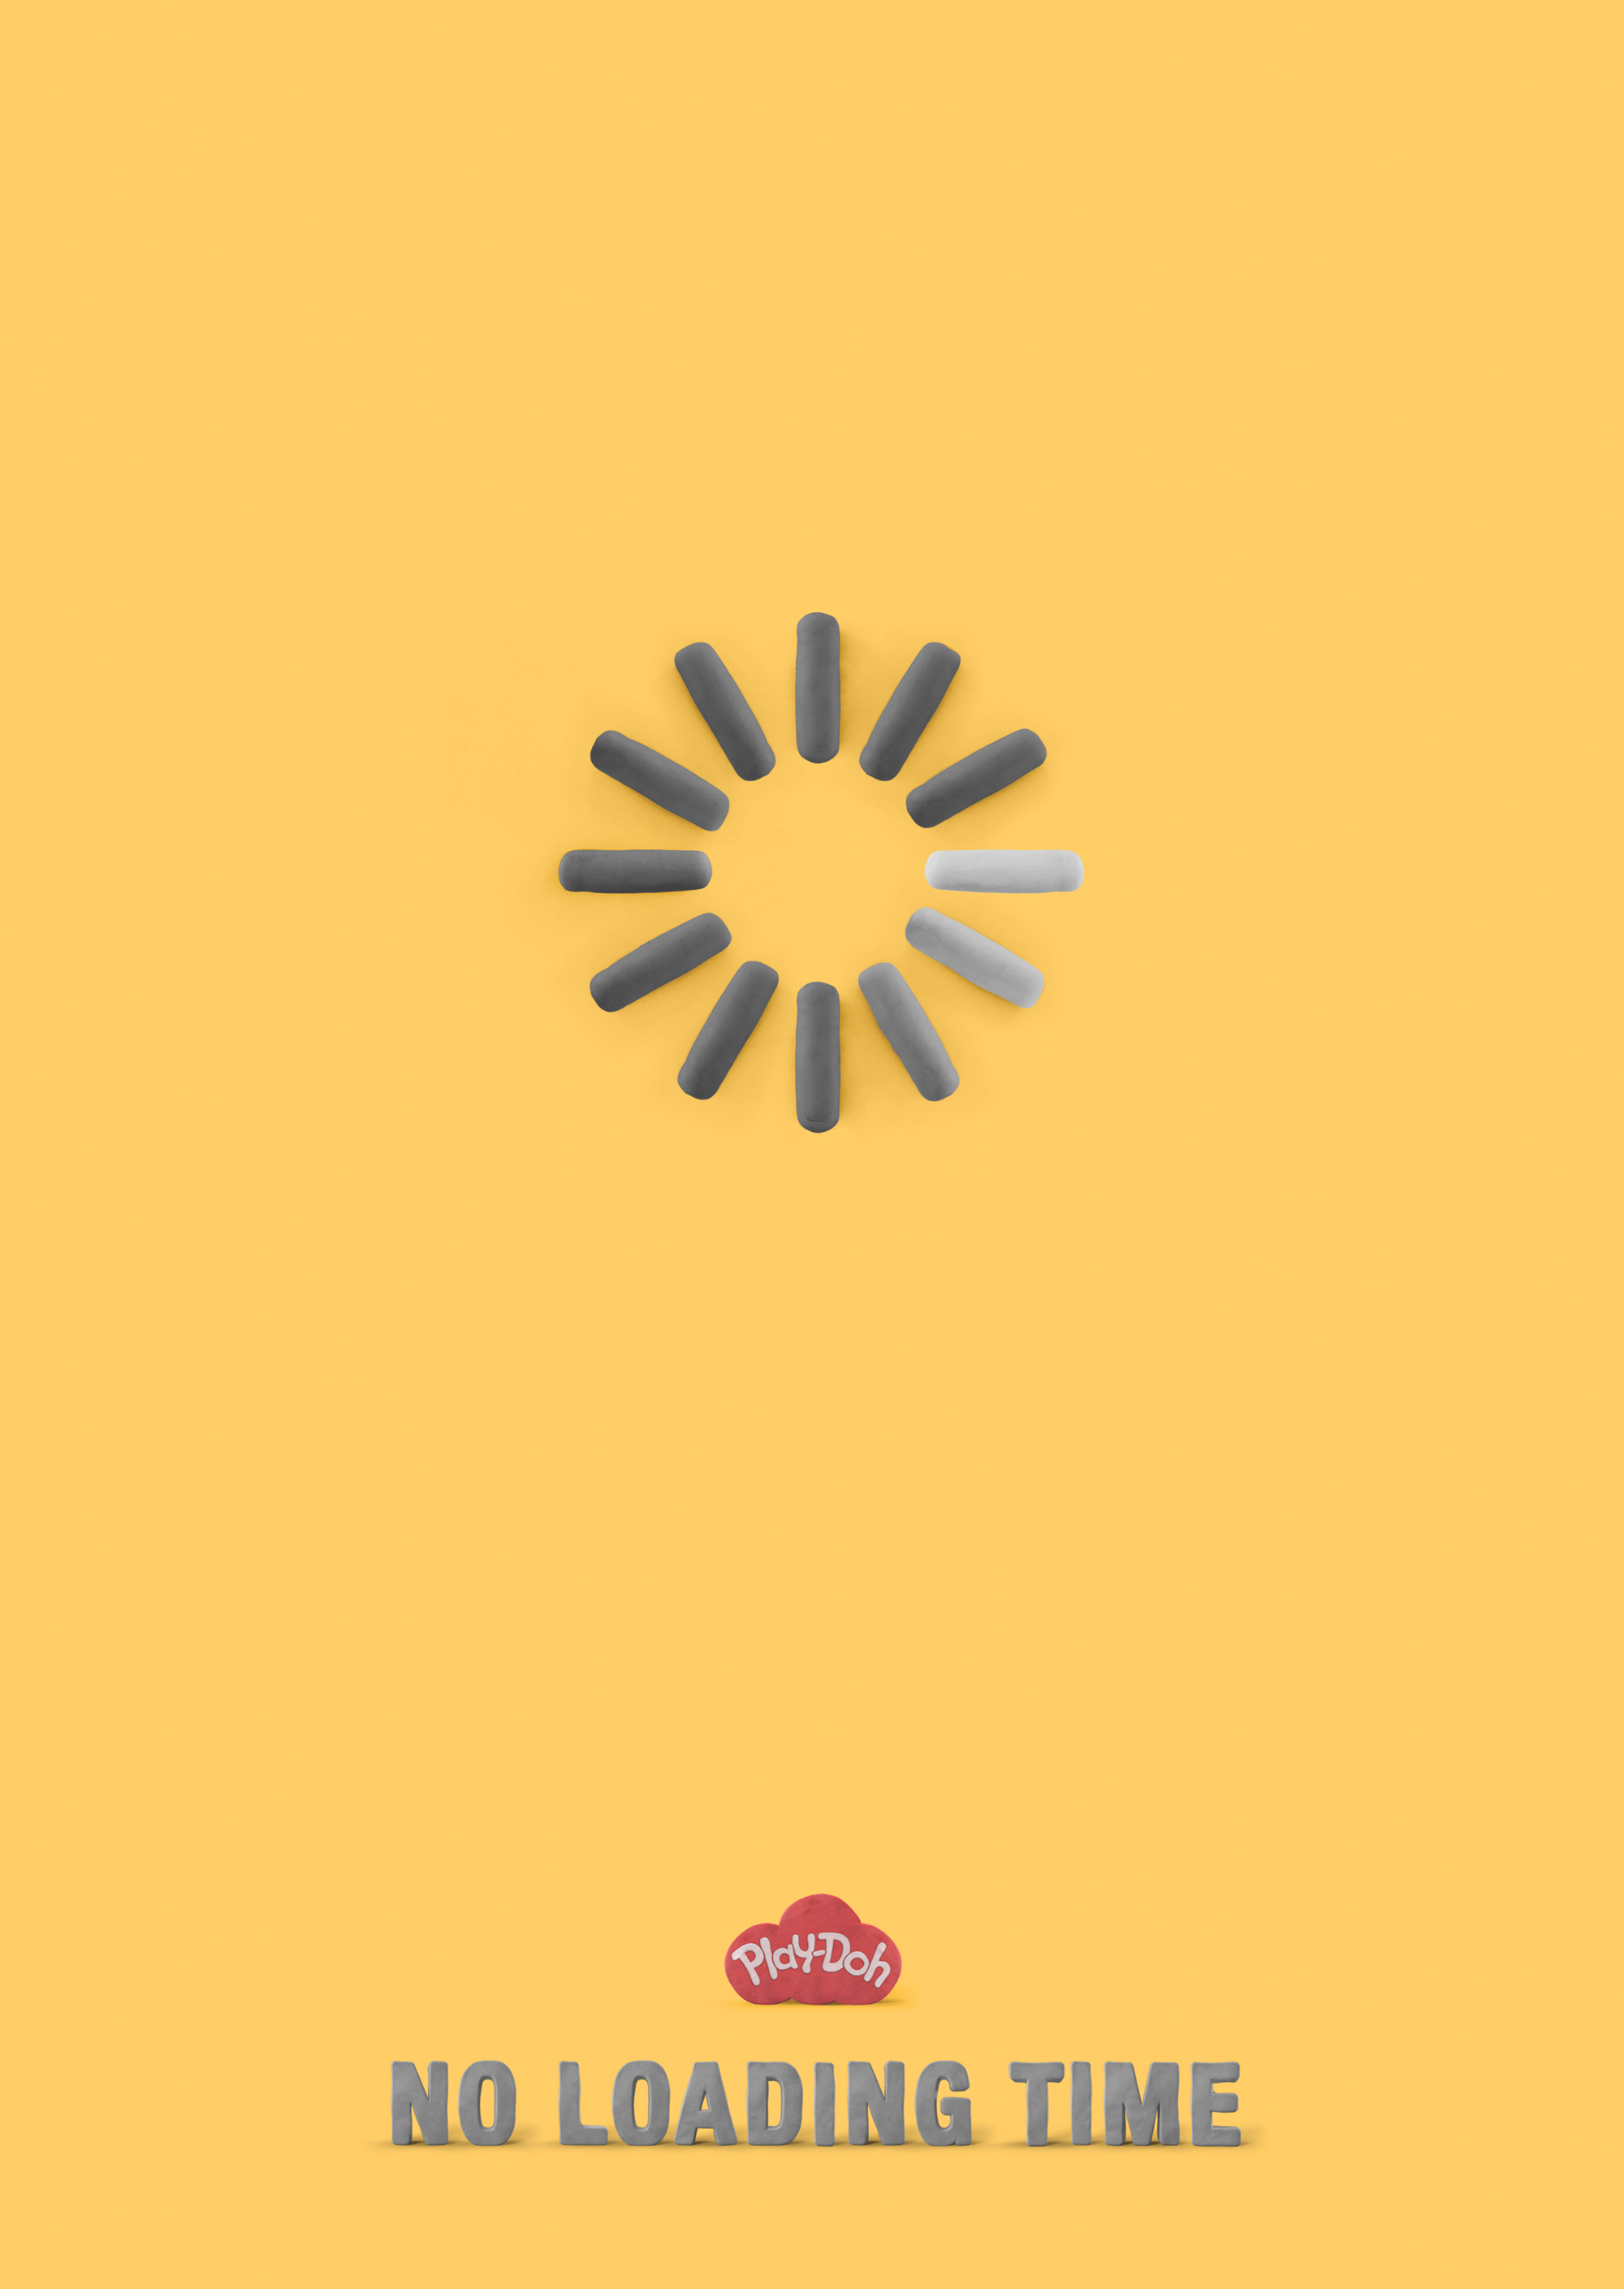 20 creative ads and what you can learn from them visual learning 16 symbols biocorpaavc Gallery